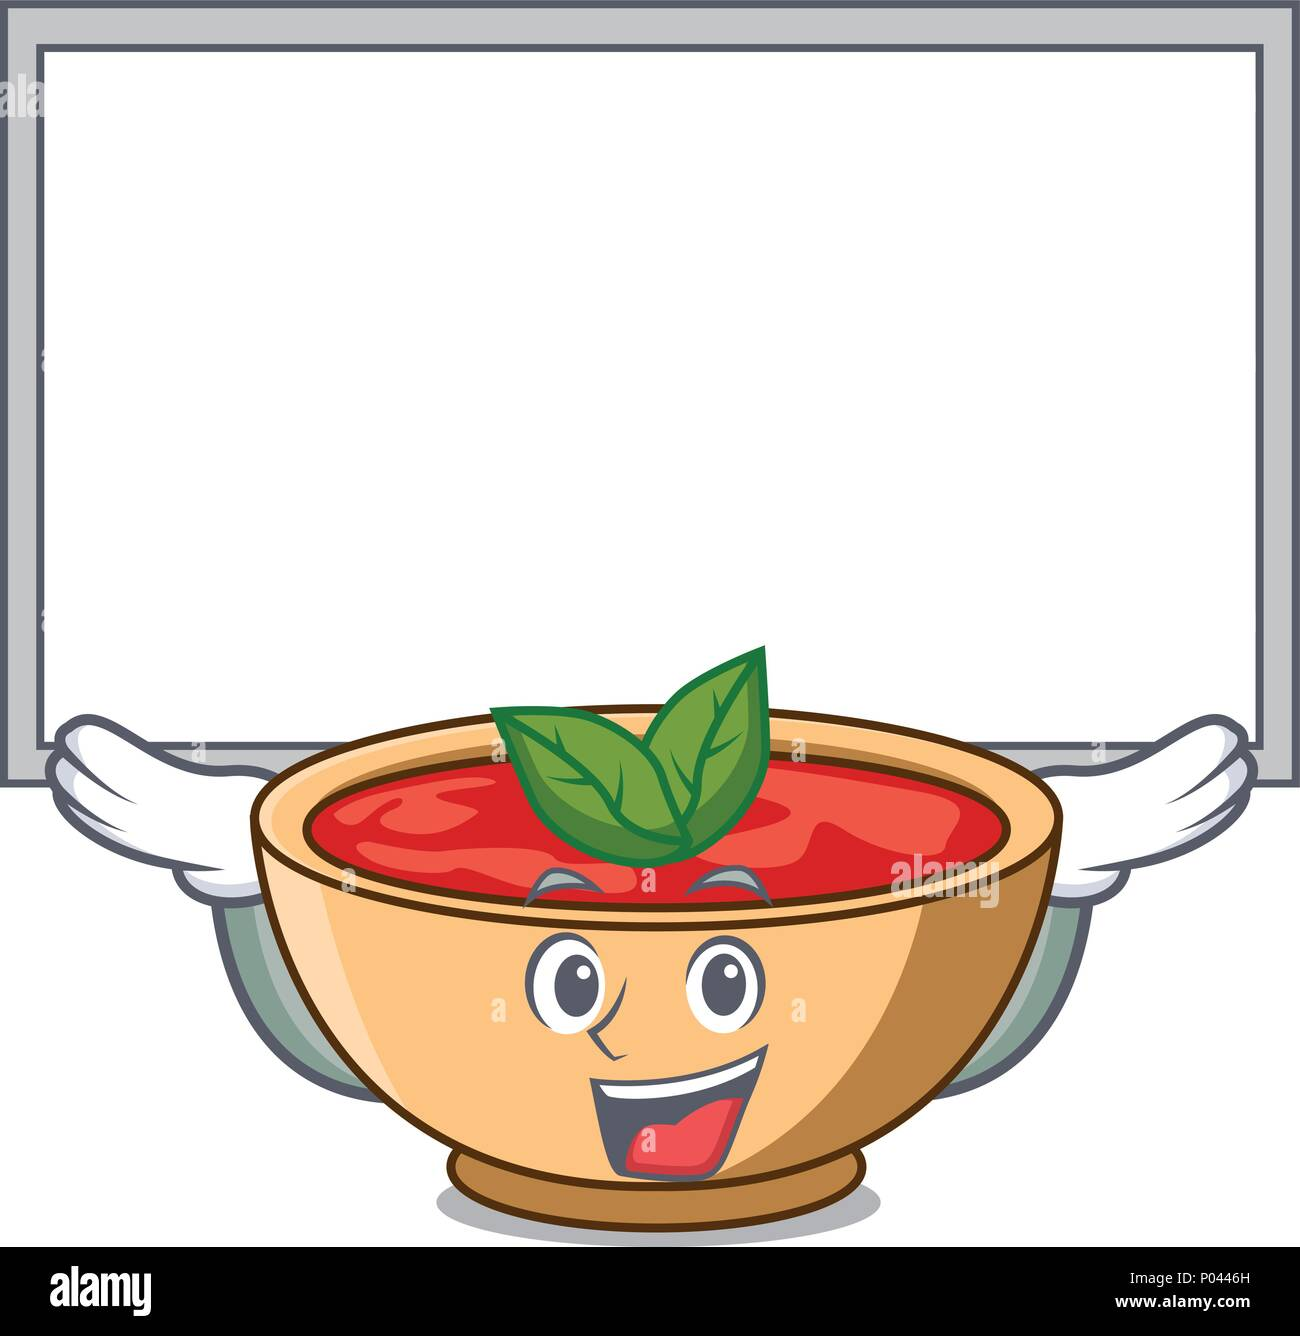 Up board tomato soup character cartoon - Stock Vector